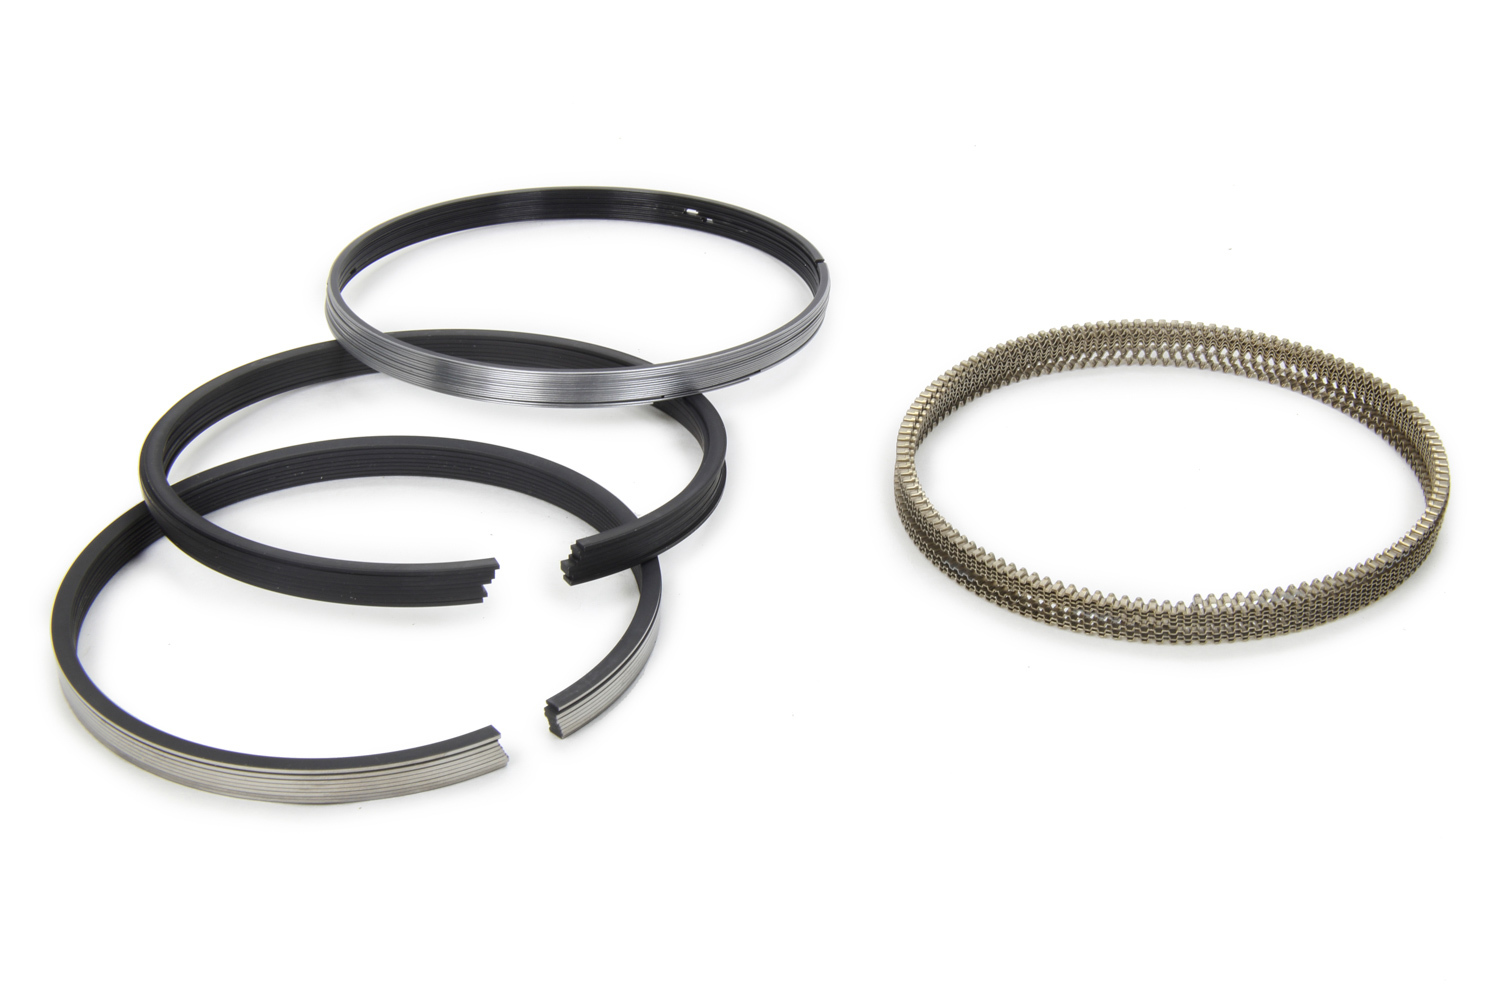 Total Seal Piston Ring Set 4.005 Classic 1.5 1.5 3.0mm